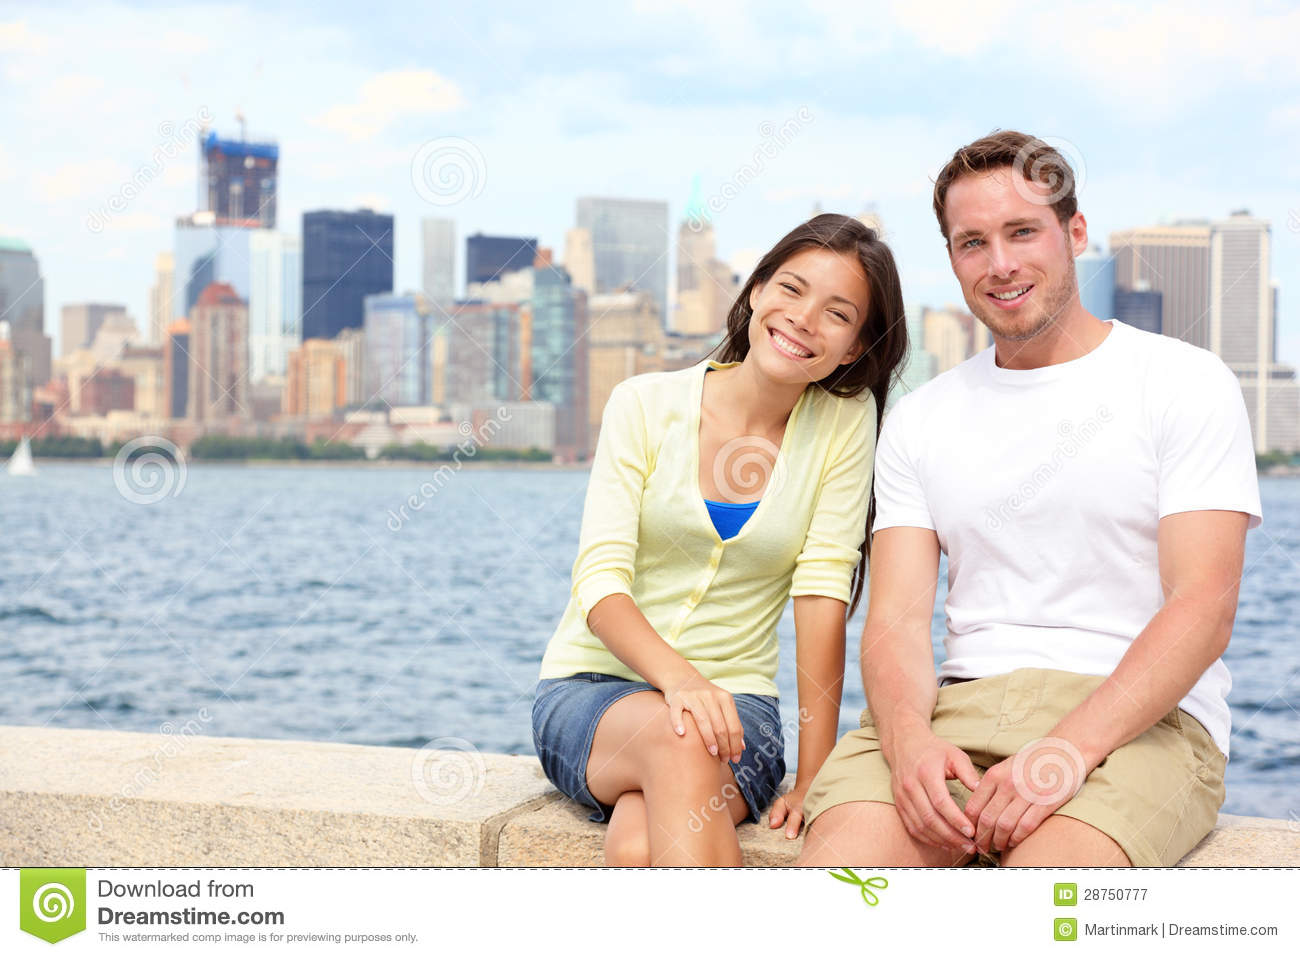 Free online dating for usa